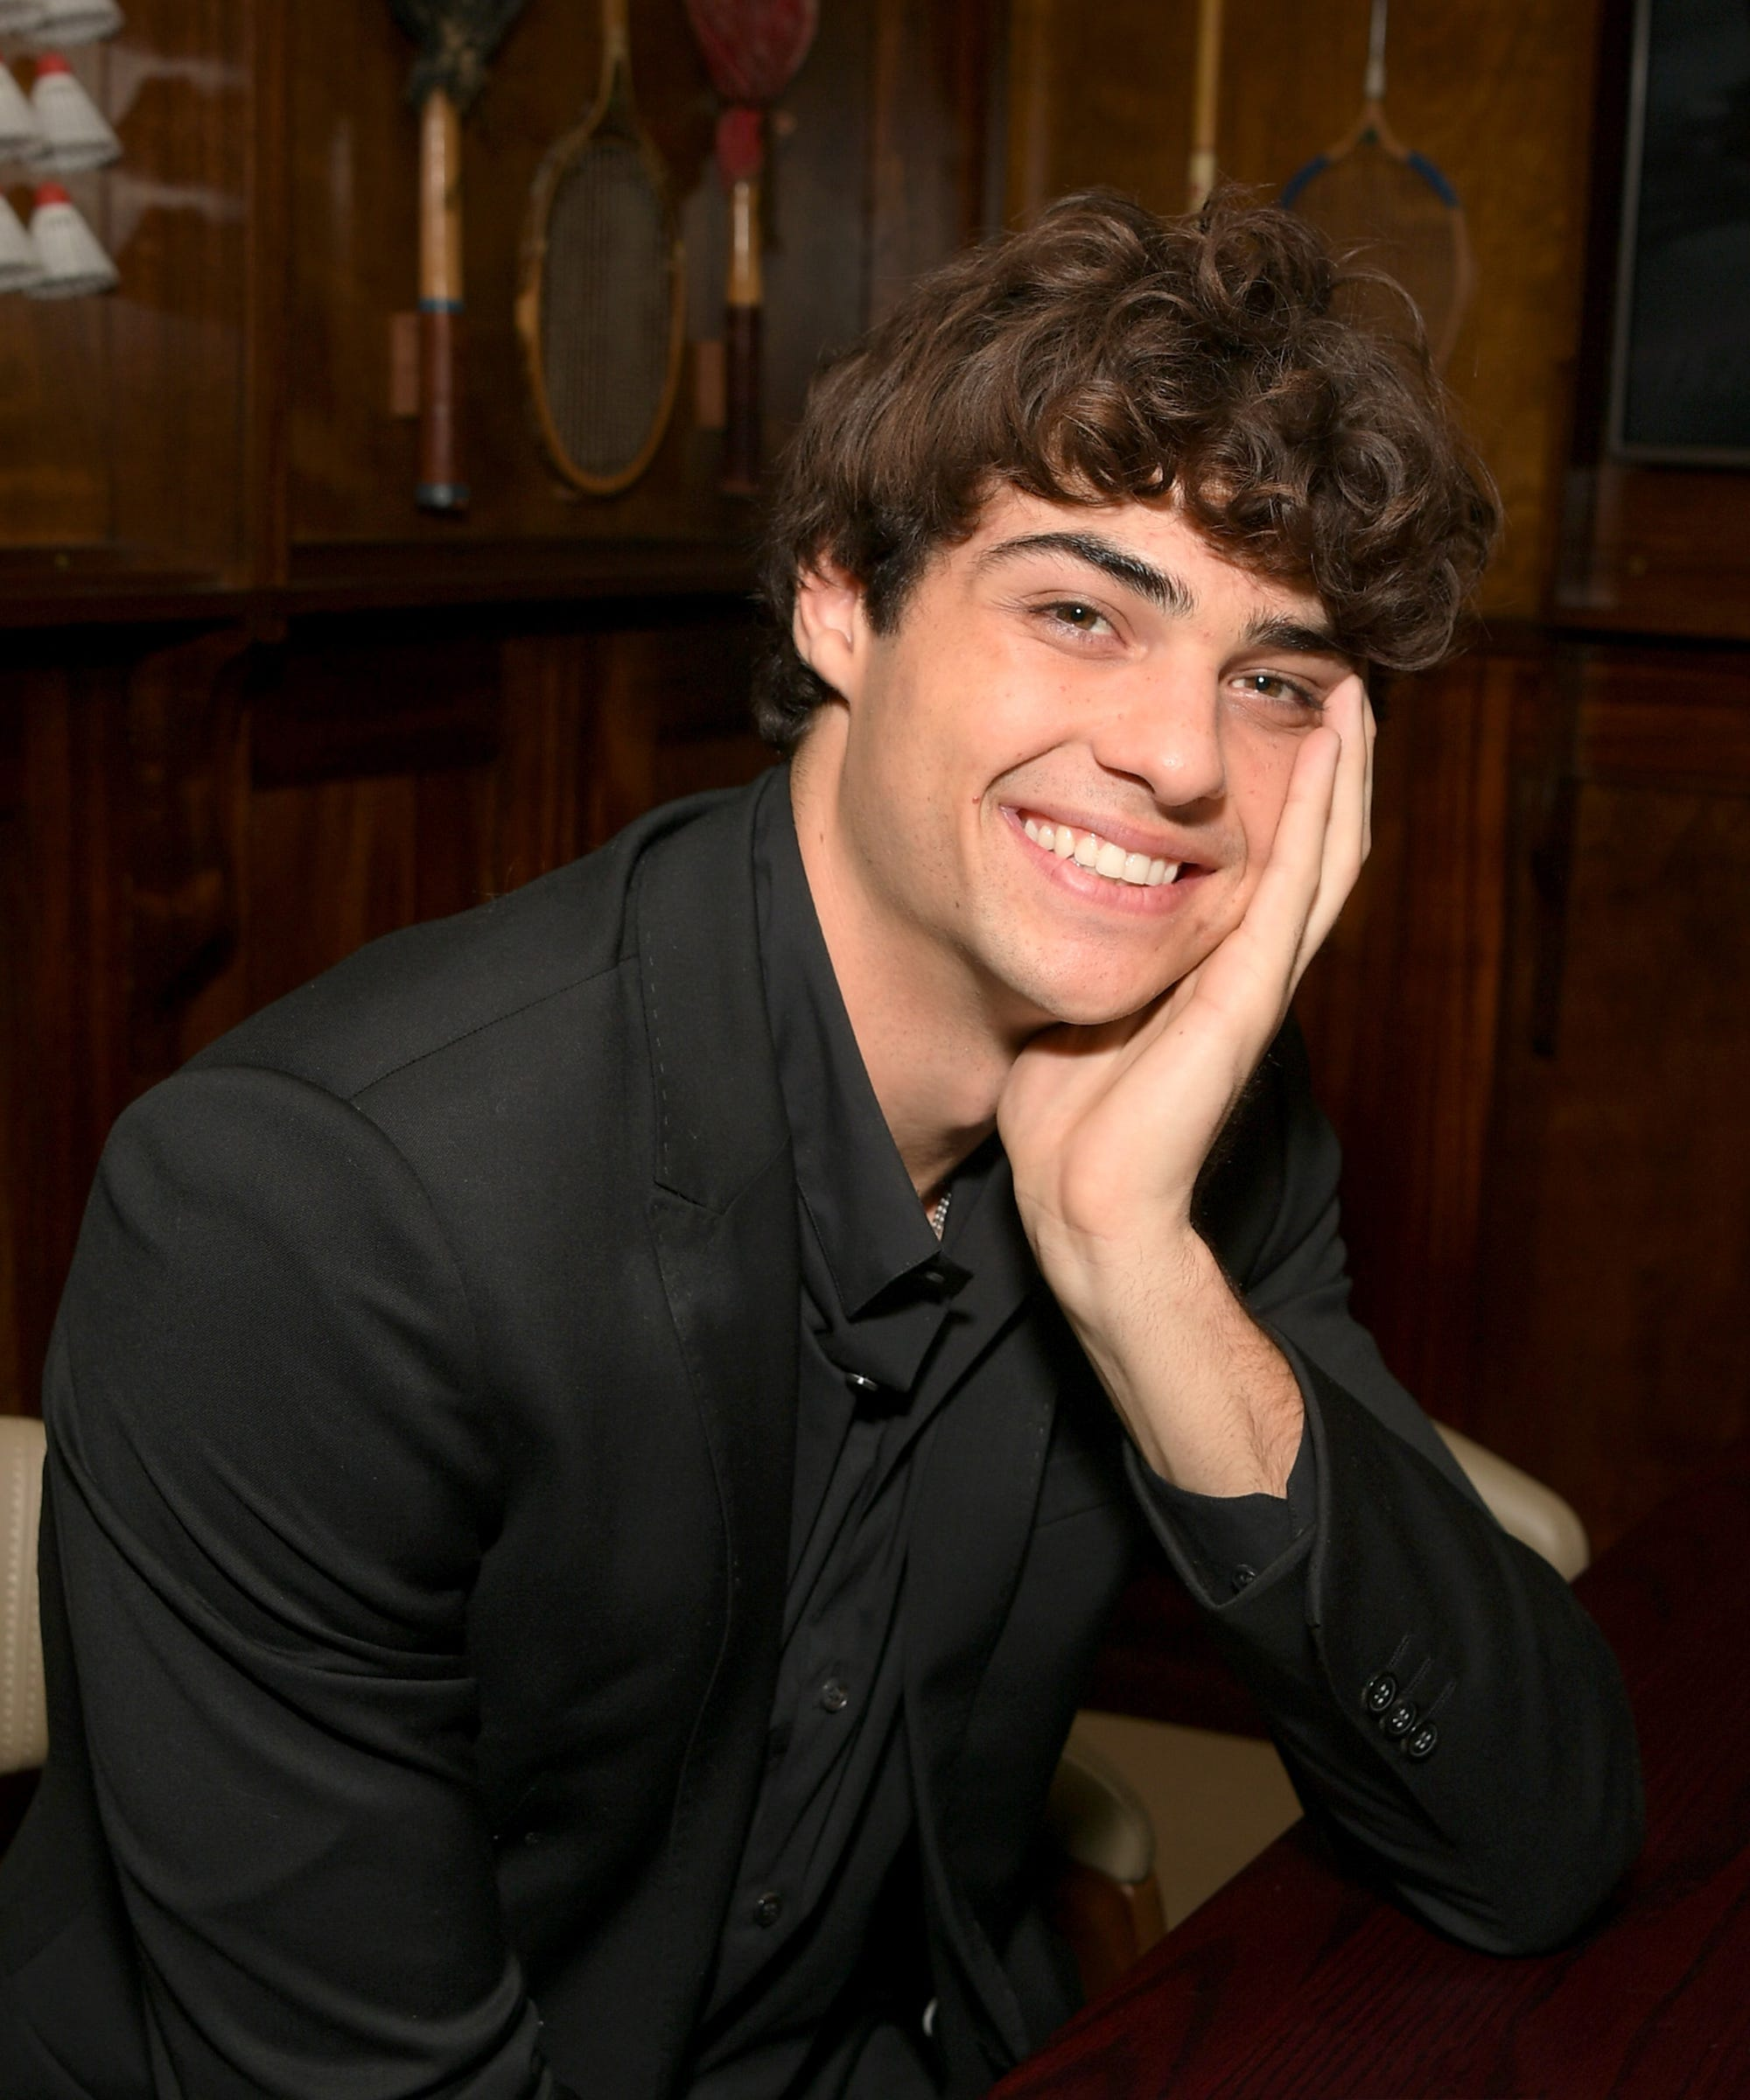 Cue Broken Hearts: Noah Centineo Says Goodbye To Peter Kavinsky